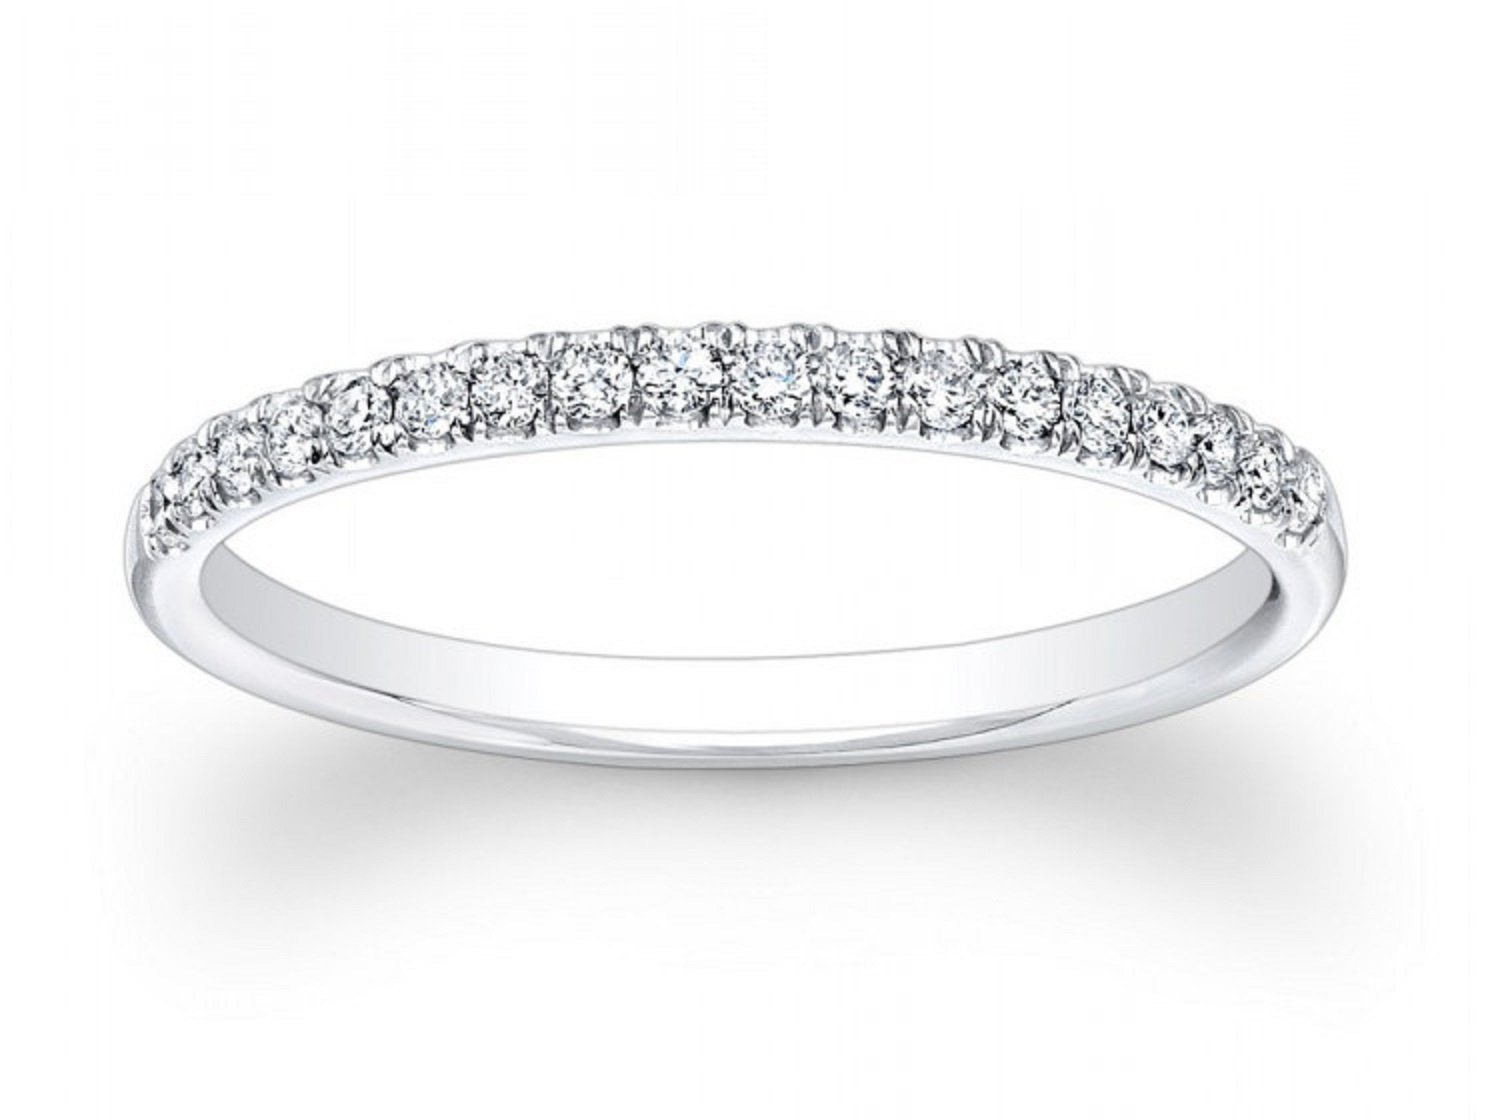 0.65ct Brilliant Round Cut Wedding Promise Bridal Engagement Band In Solid 14K White Gold for Women, Size 4.25, Clara Pucci by Clara Pucci